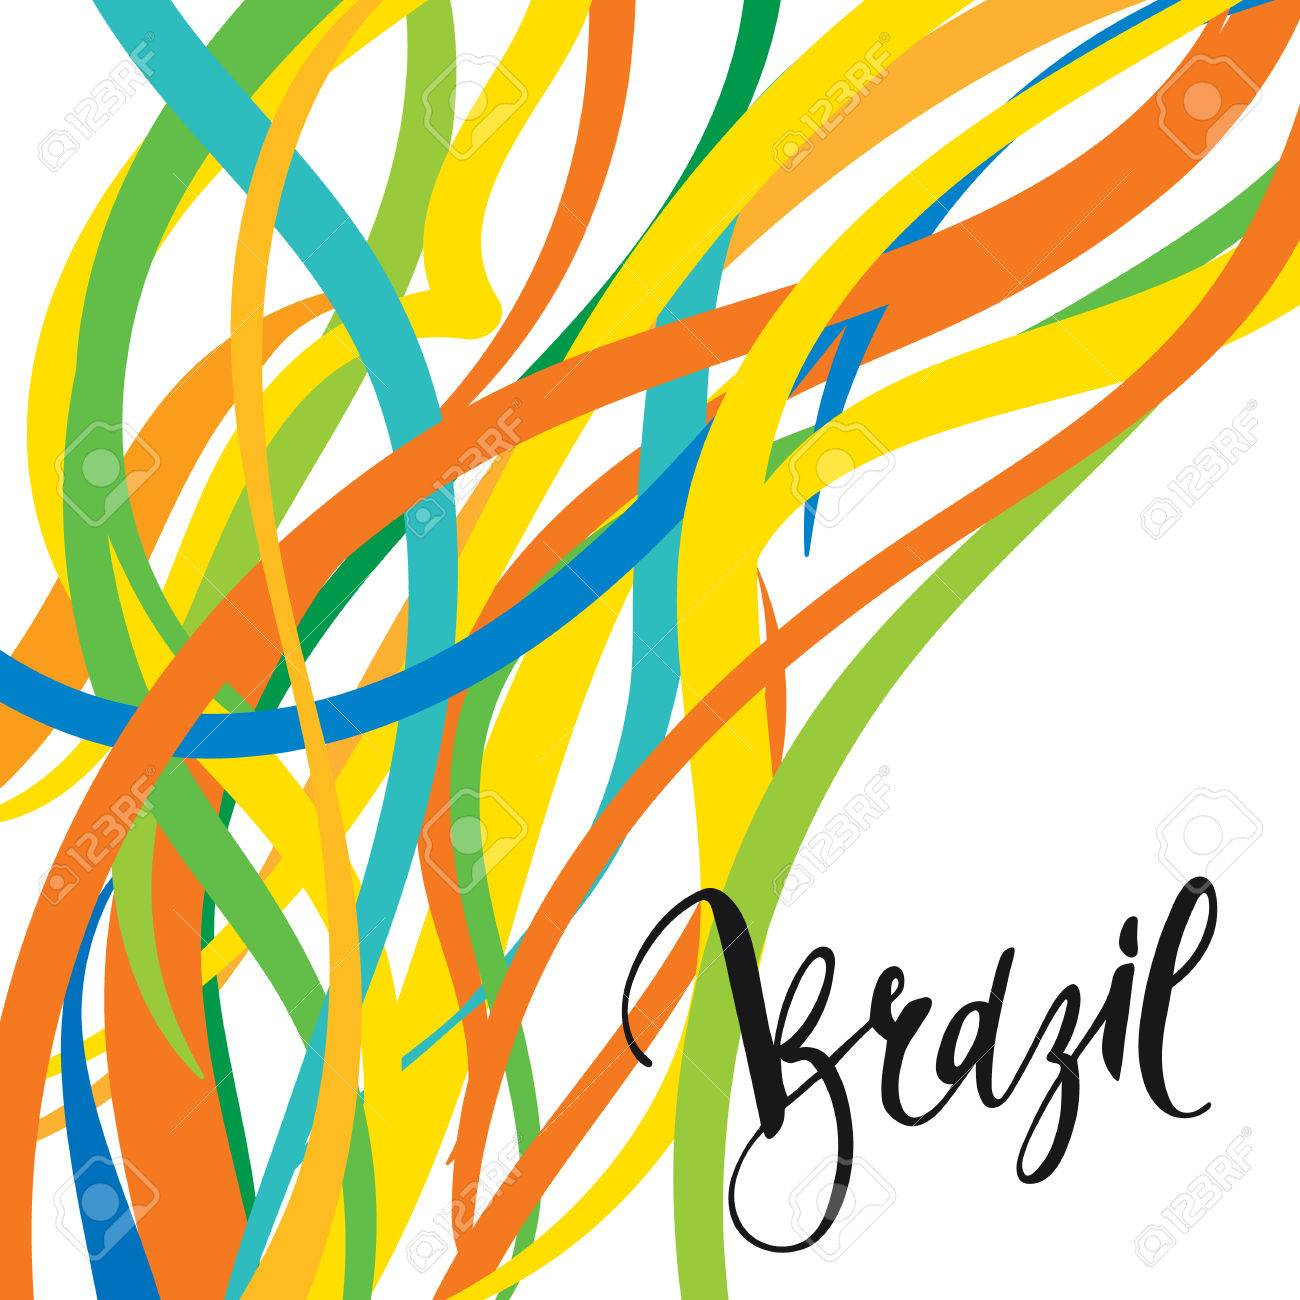 Handmade watercolor brazil flag brasil stock photos freeimages com - Inscription Brazil Background Colors Of The Brazilian Flag Calligraphy Handmade Greeting Cards Posters